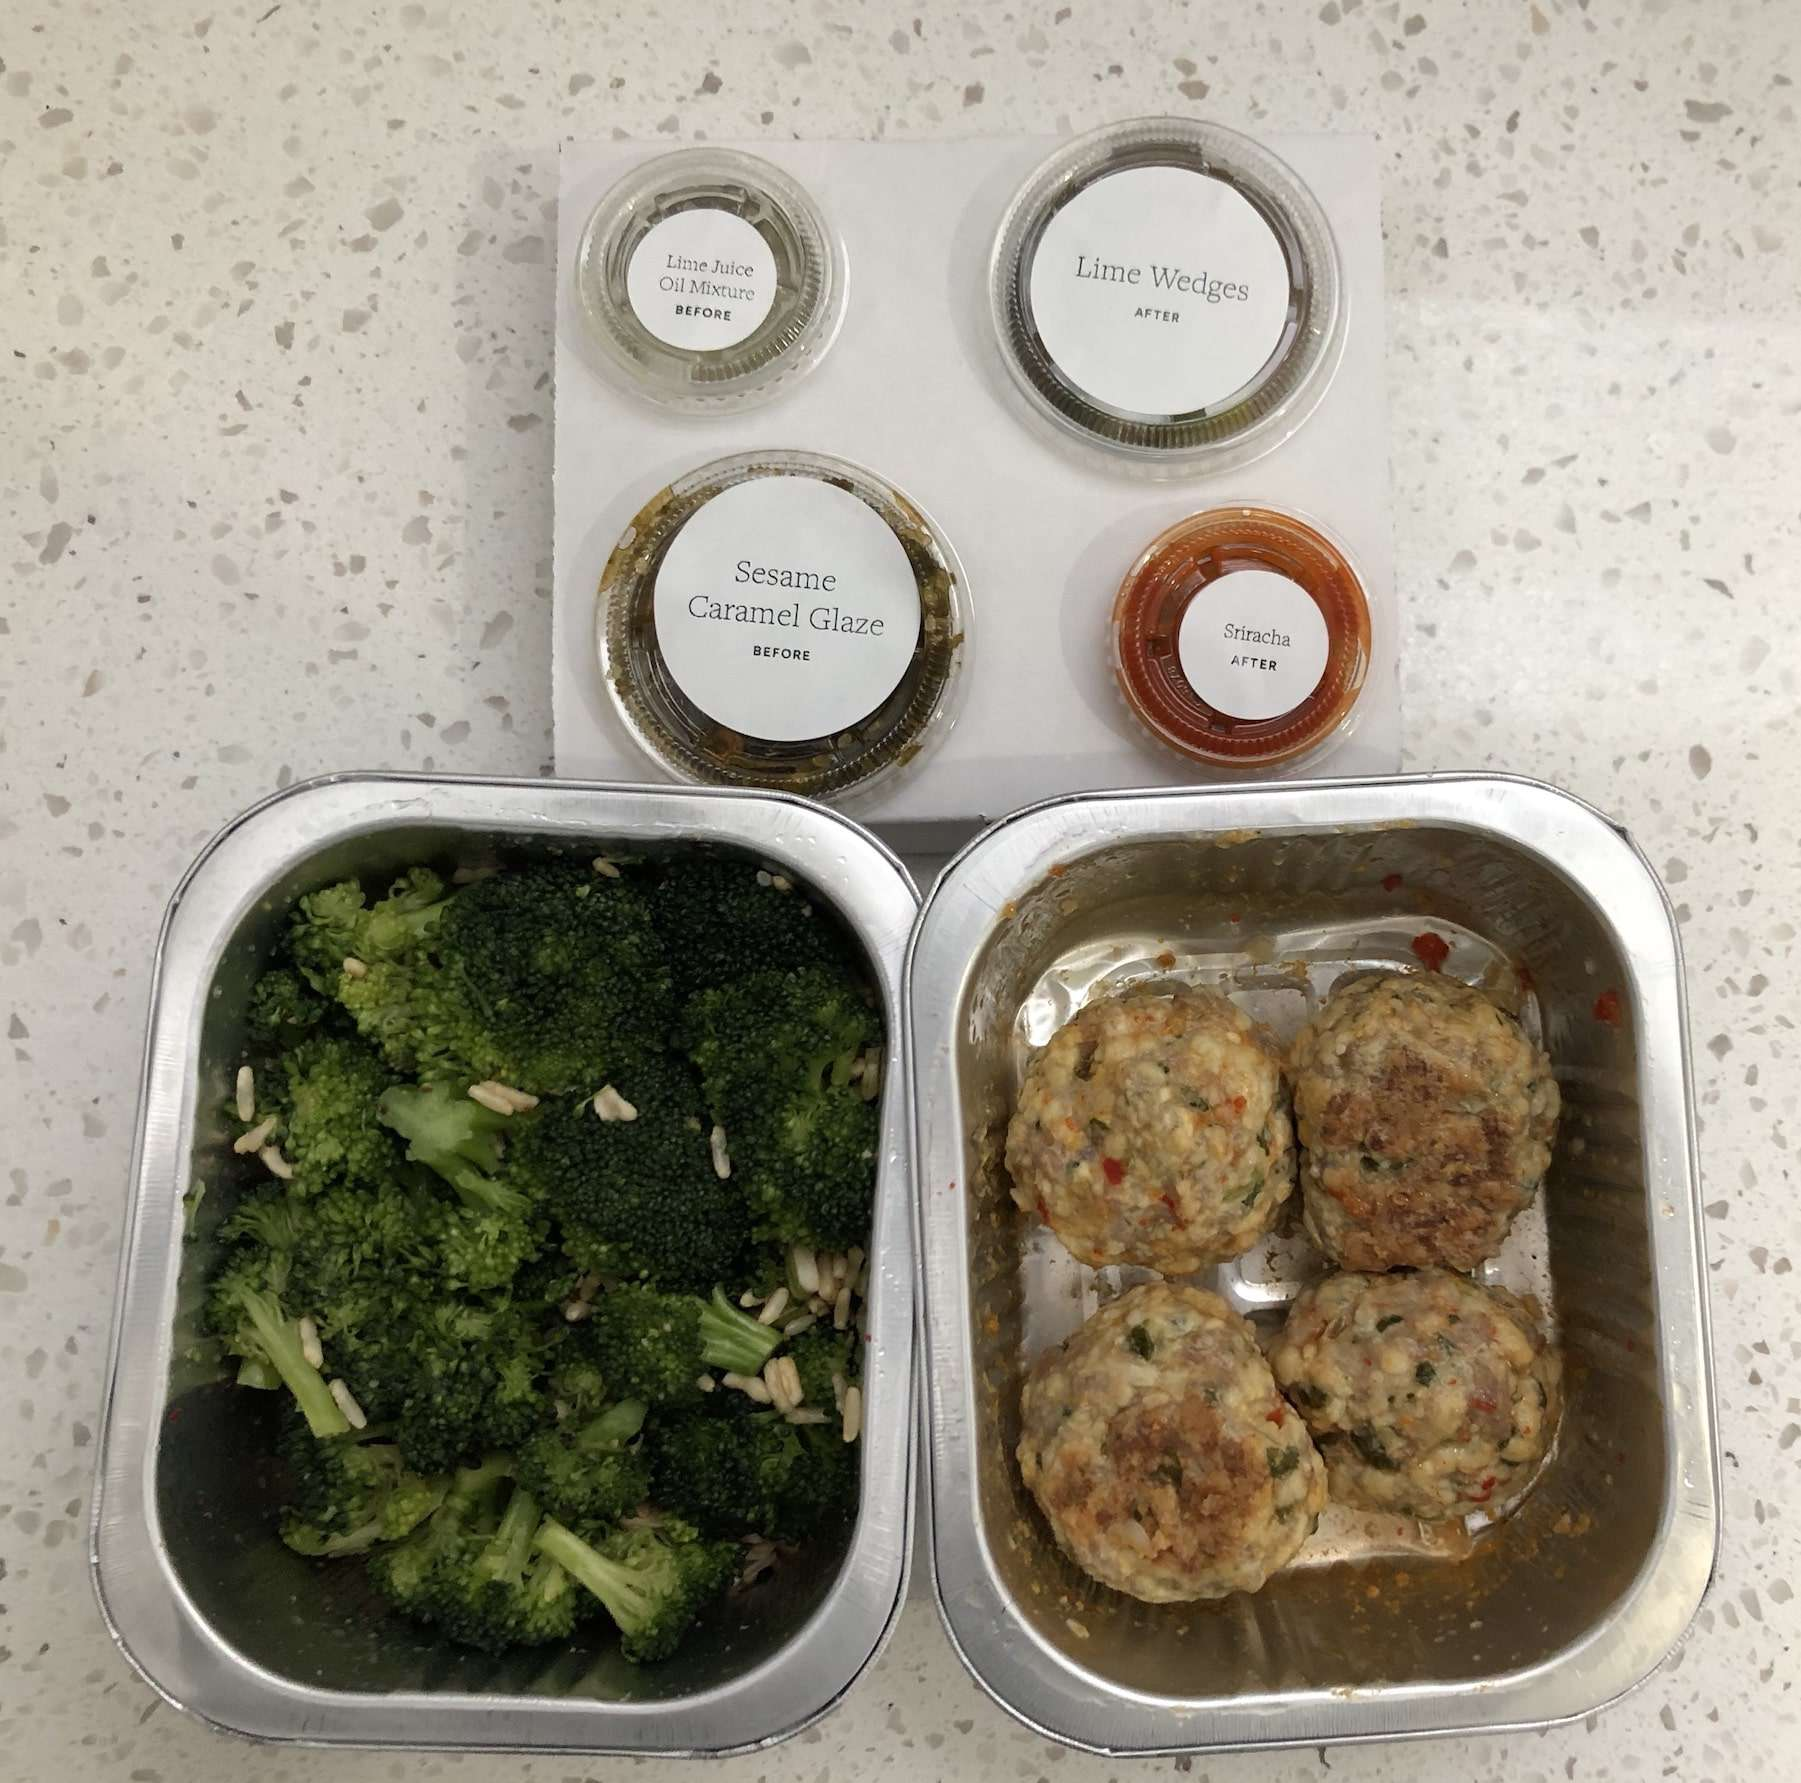 Tovala Smart Oven Review - We Tried it tovala-meal-sections